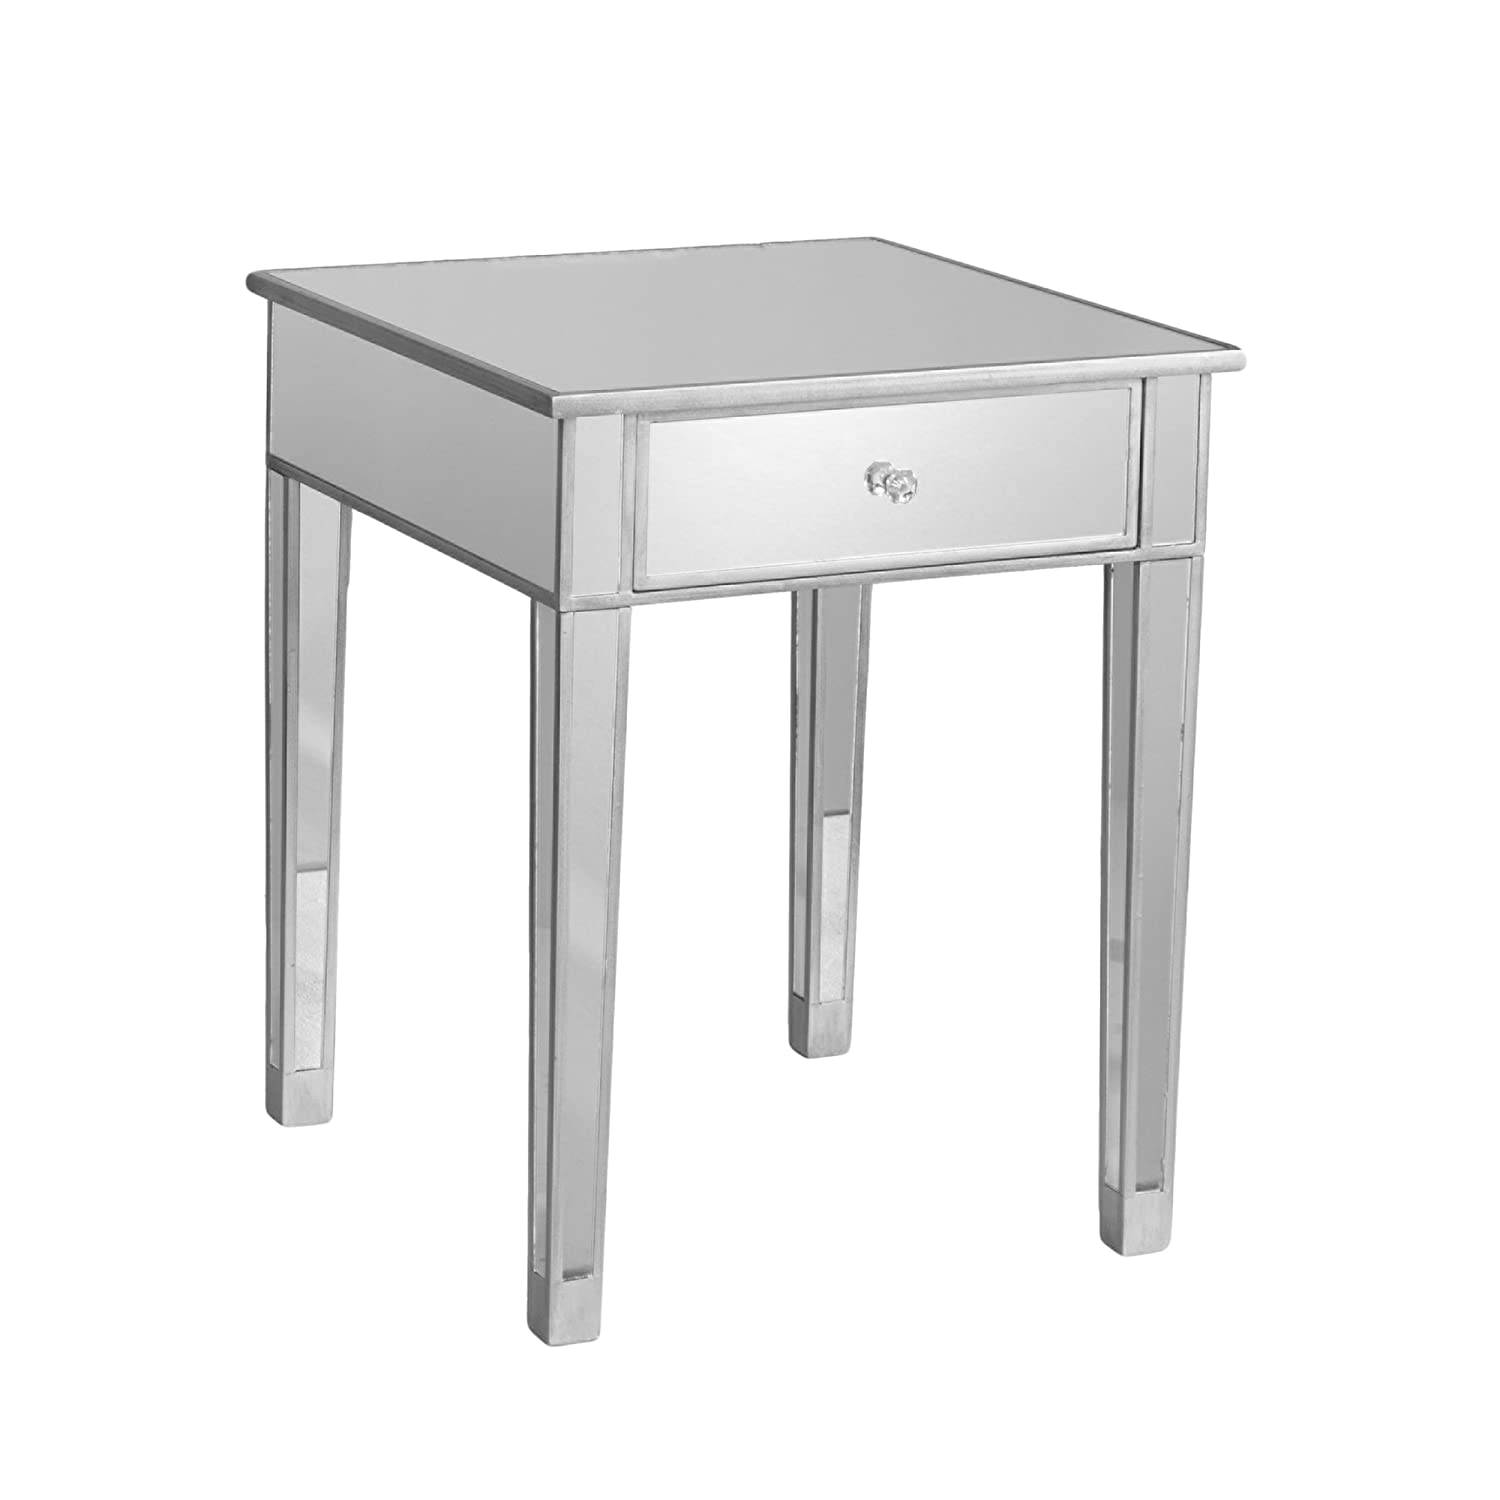 Southern Enterprises Mirage Mirrored Accent Table, Matte Silver Finish with Faux Crystal Knob